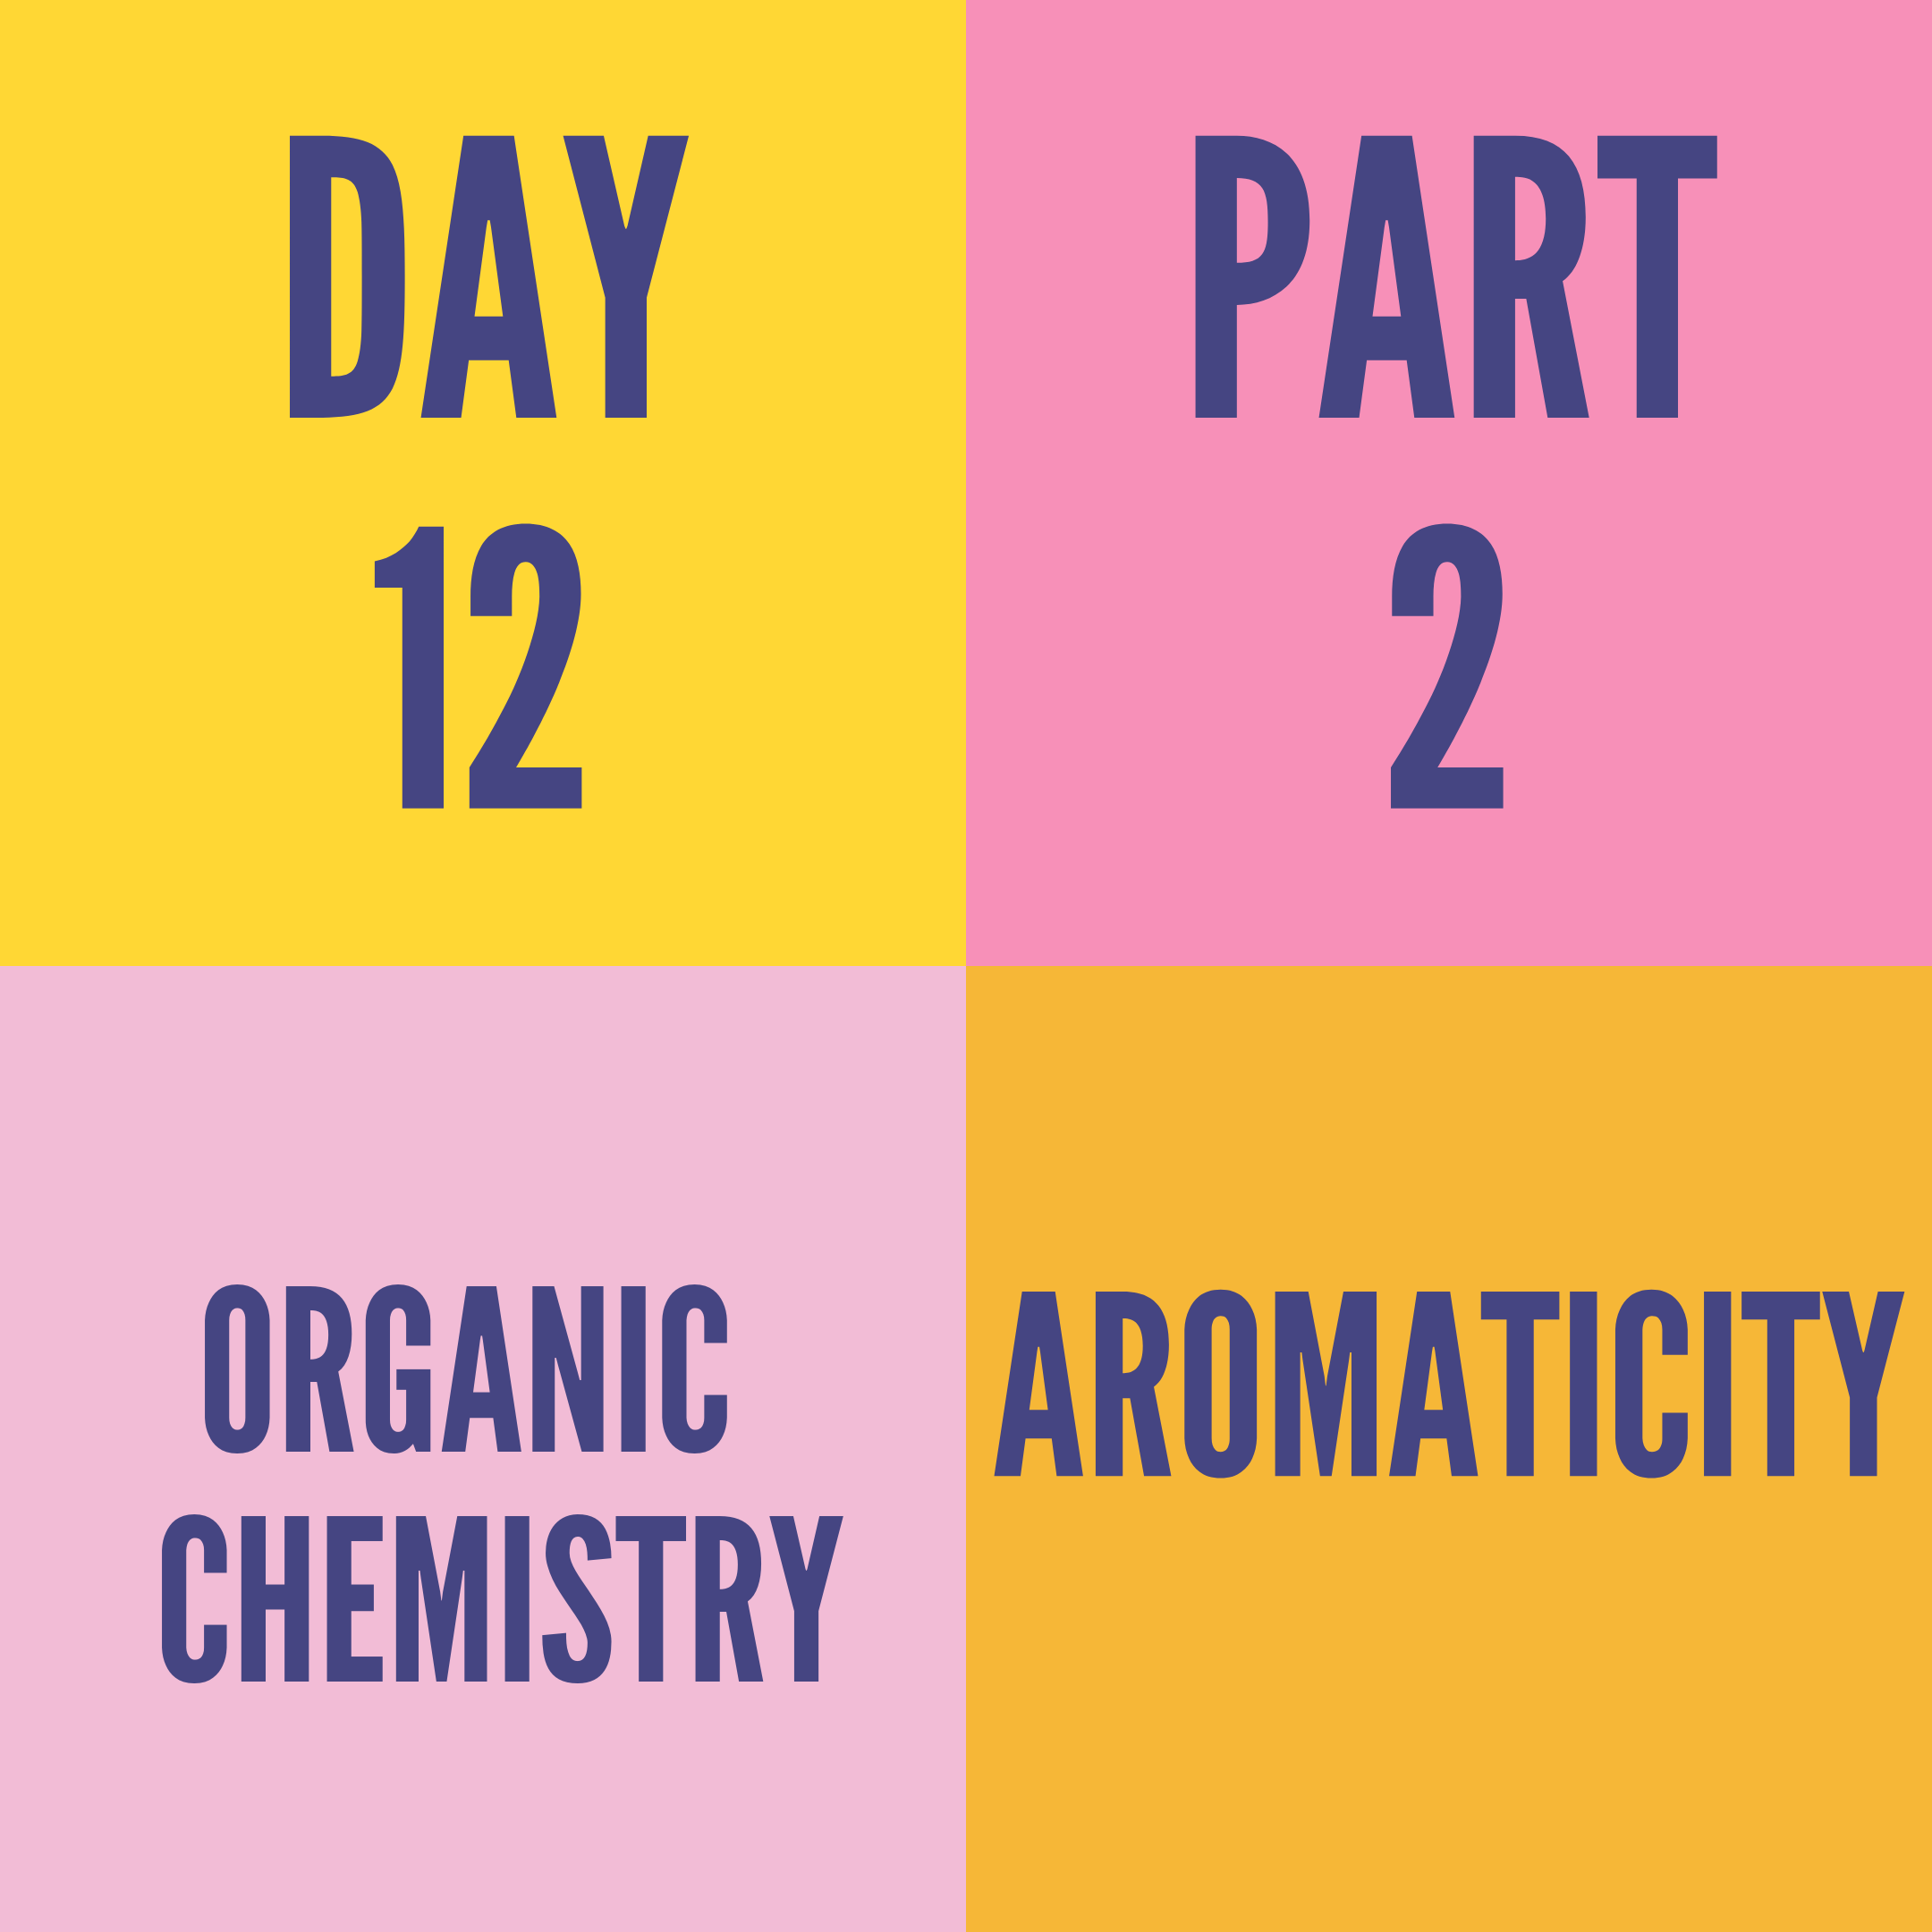 DAY-12 PART-2 AROMATICITY